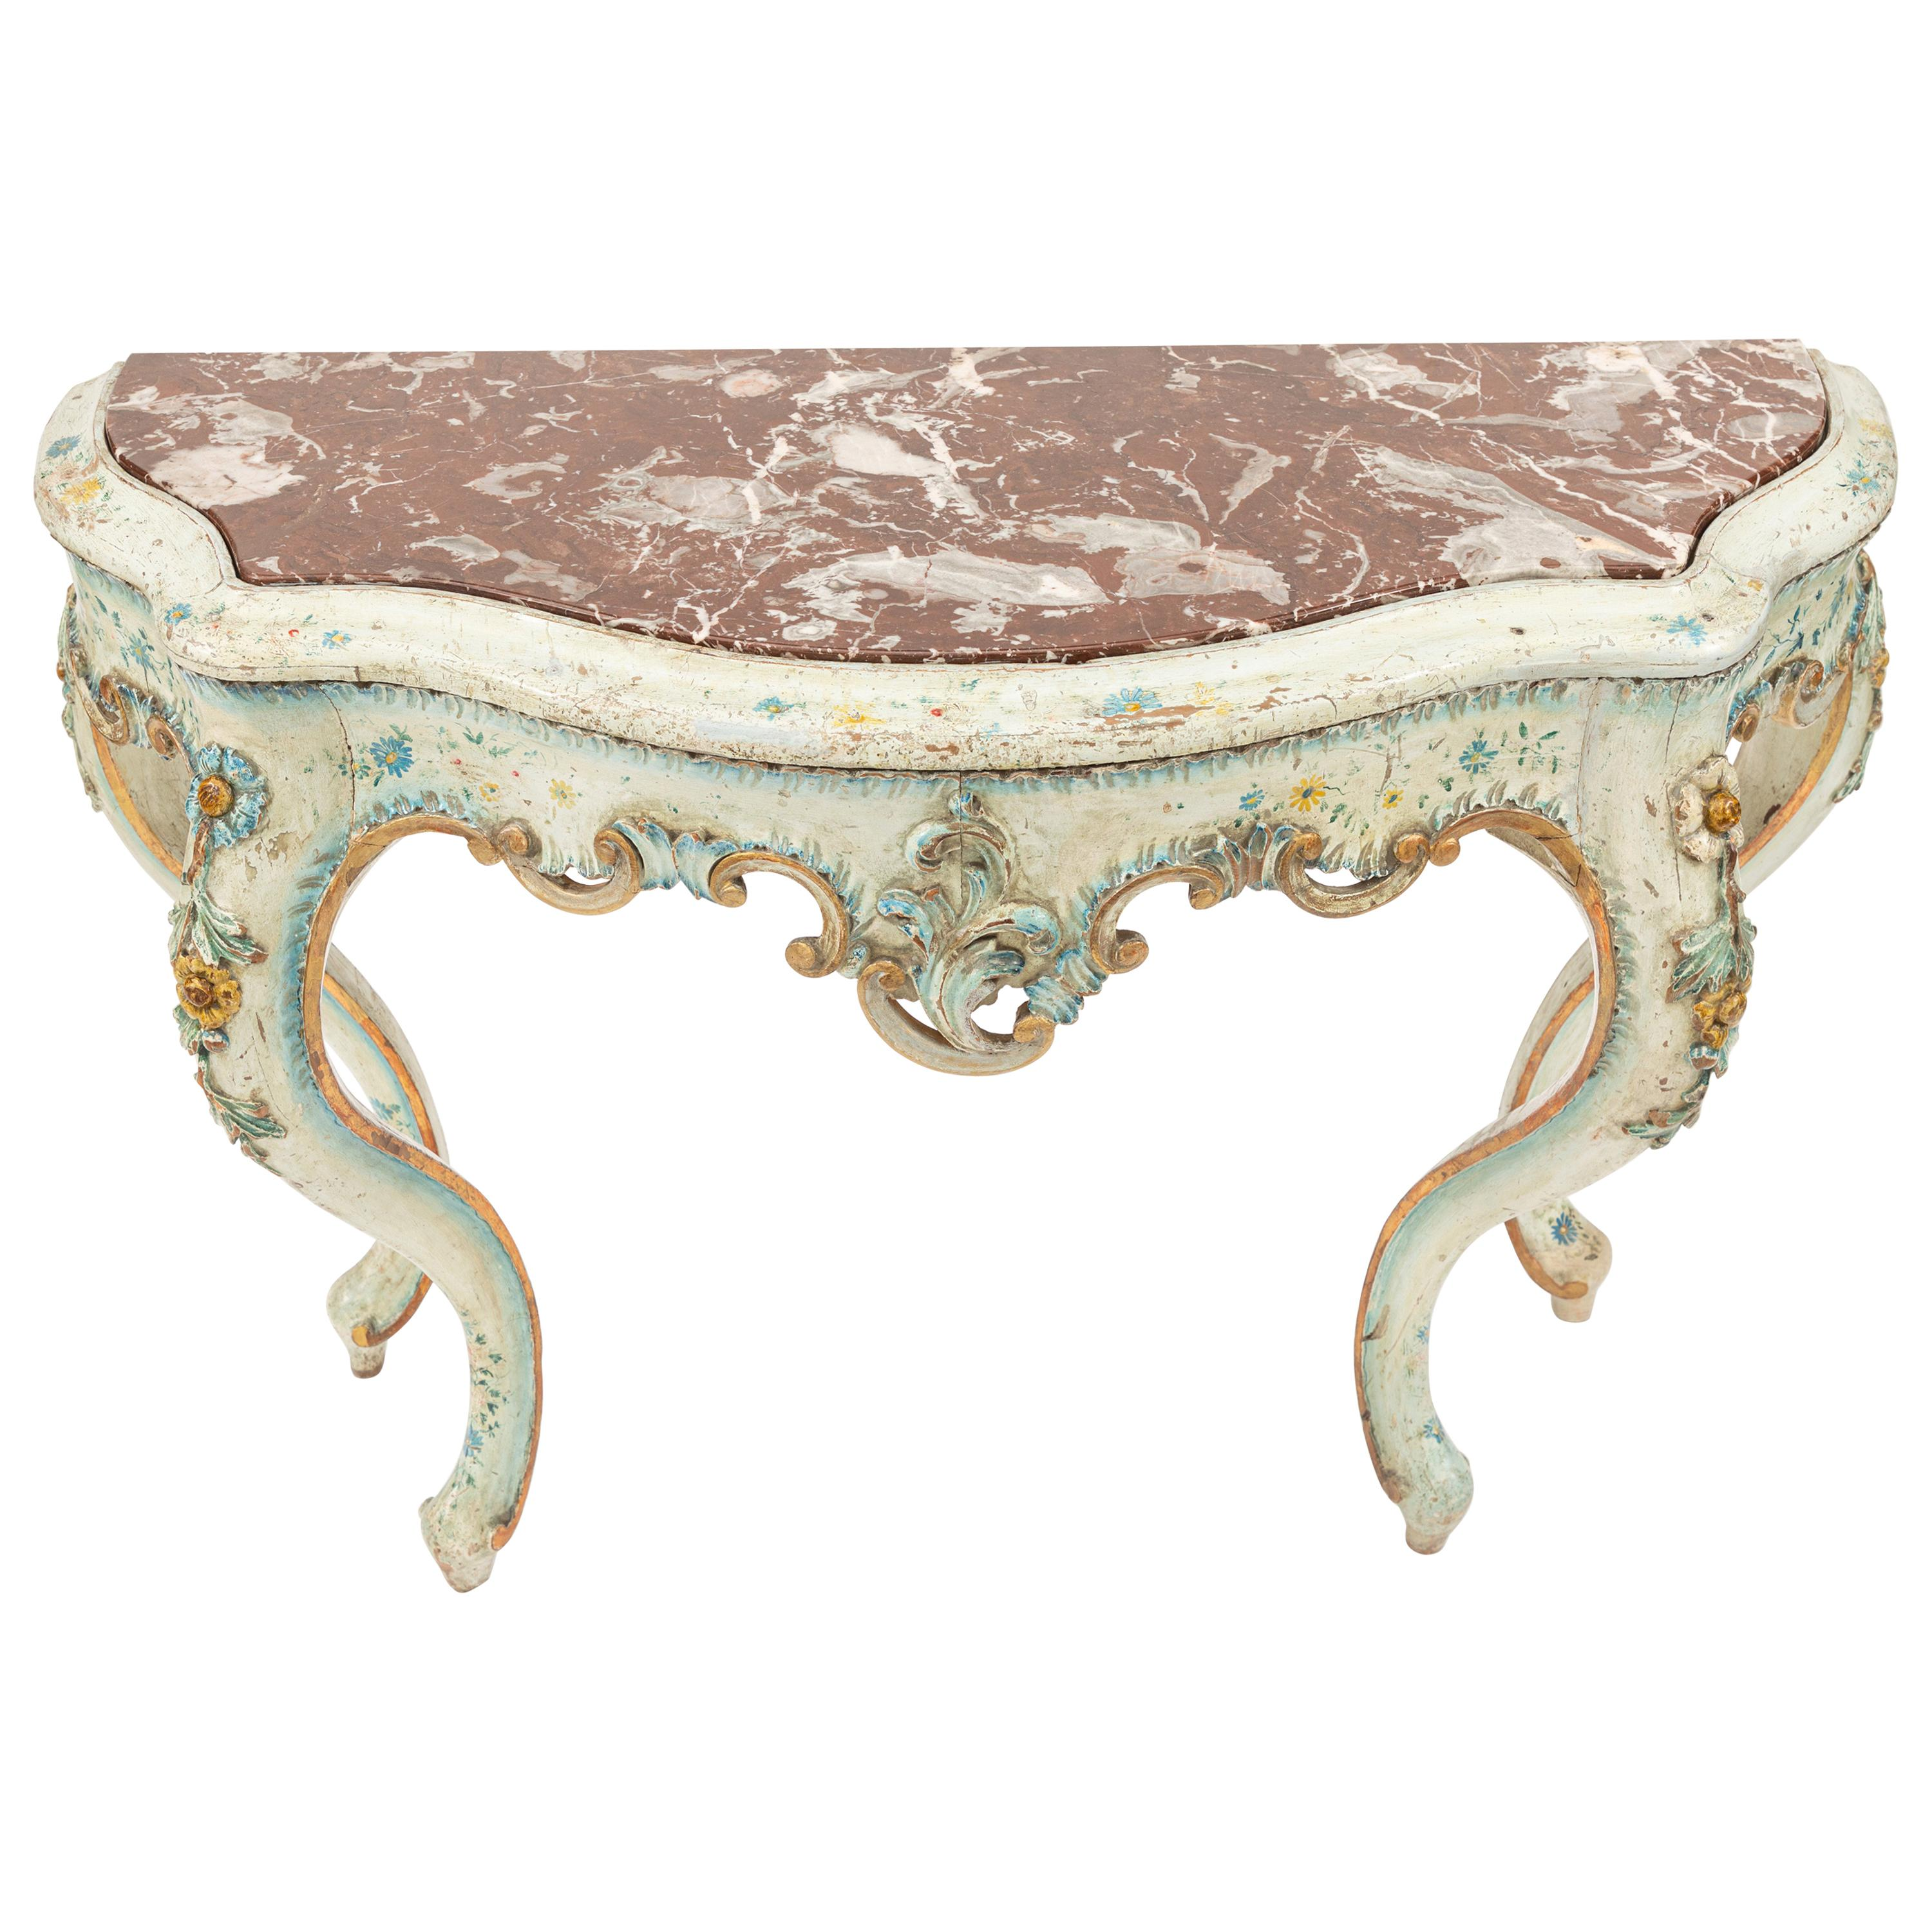 19th Century Painted Venetian Console with Marble Top